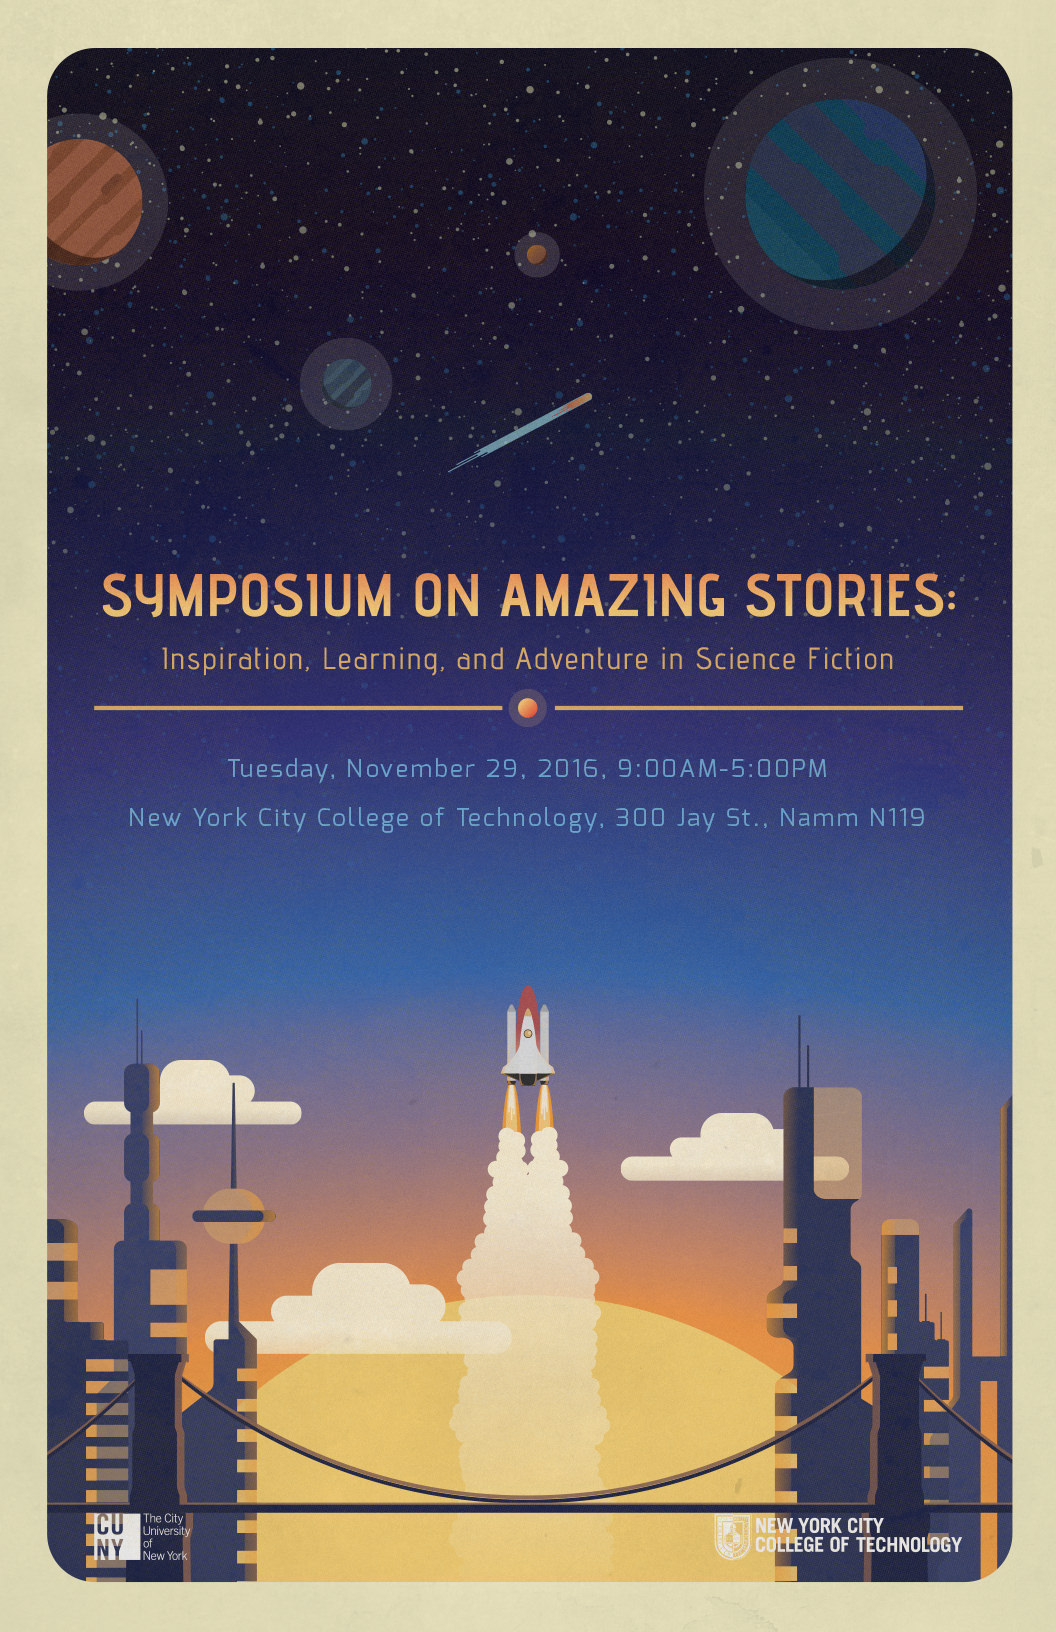 Symposium on Amazing Stories